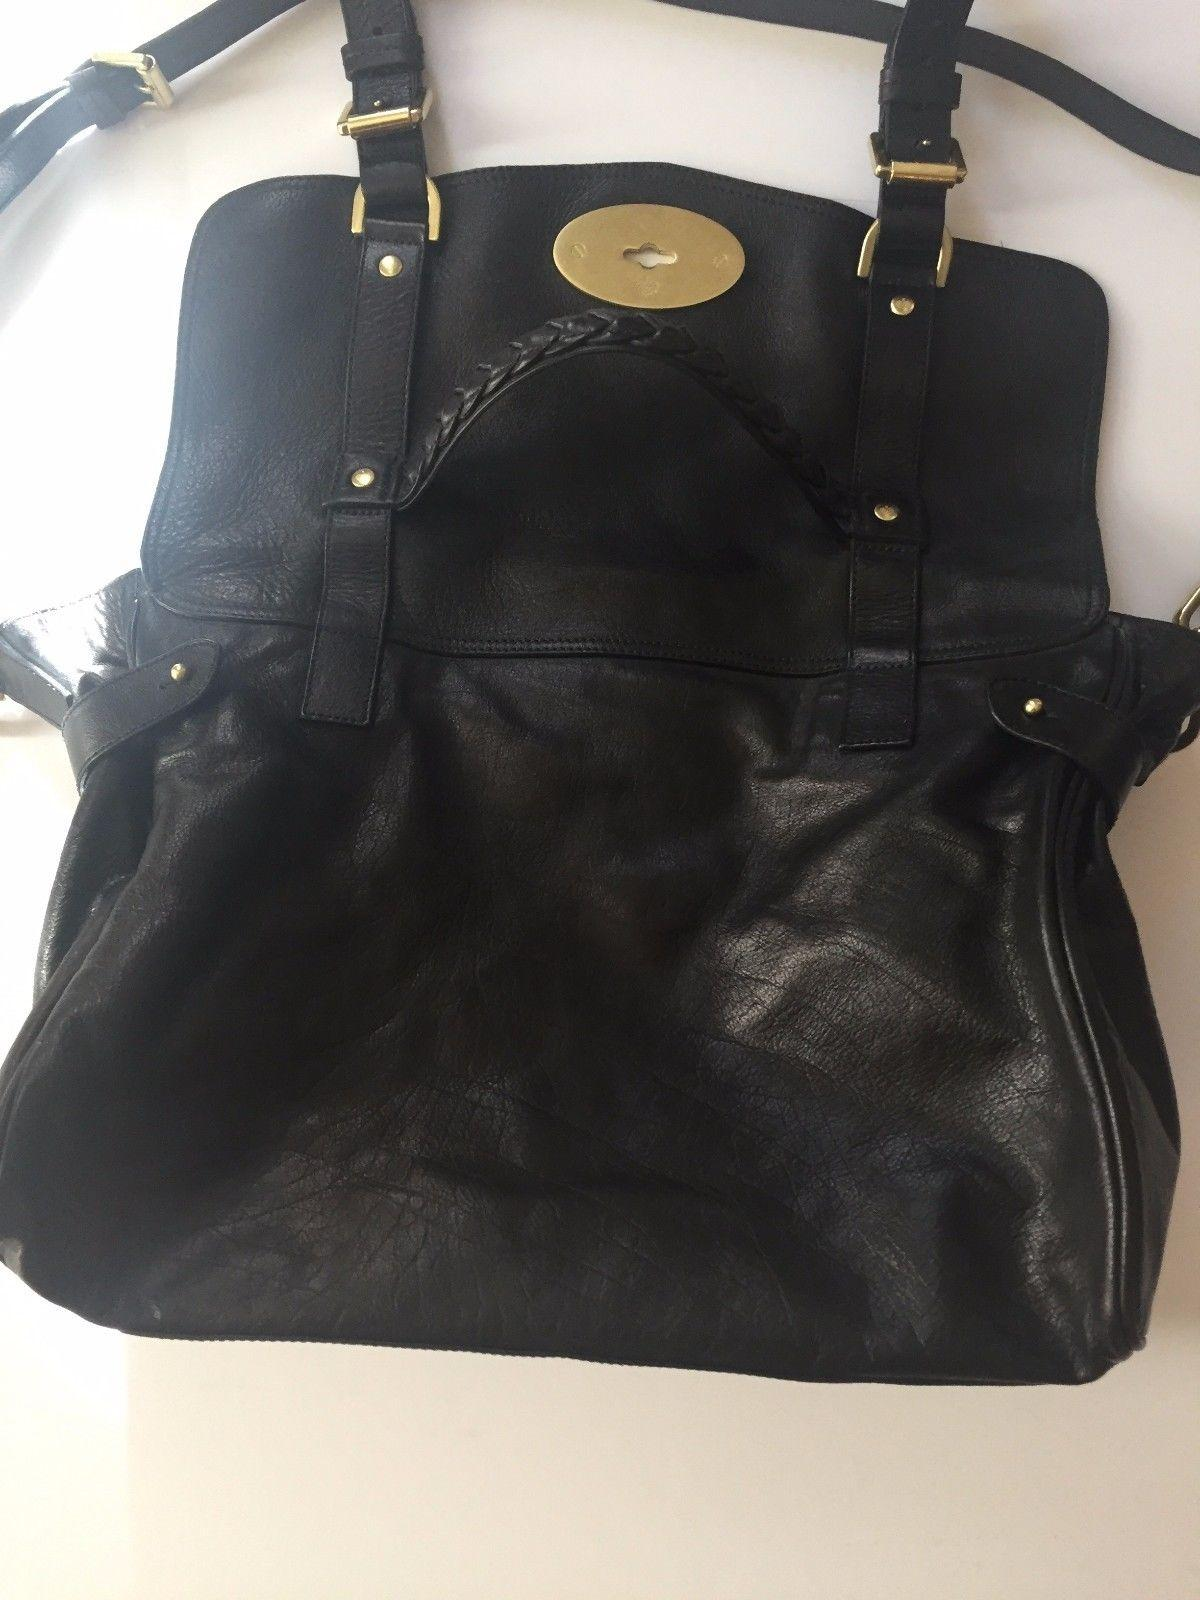 ... low price mulberry oversized alexa black leather satchel 6a959 d2da7 751f9b8063c8c